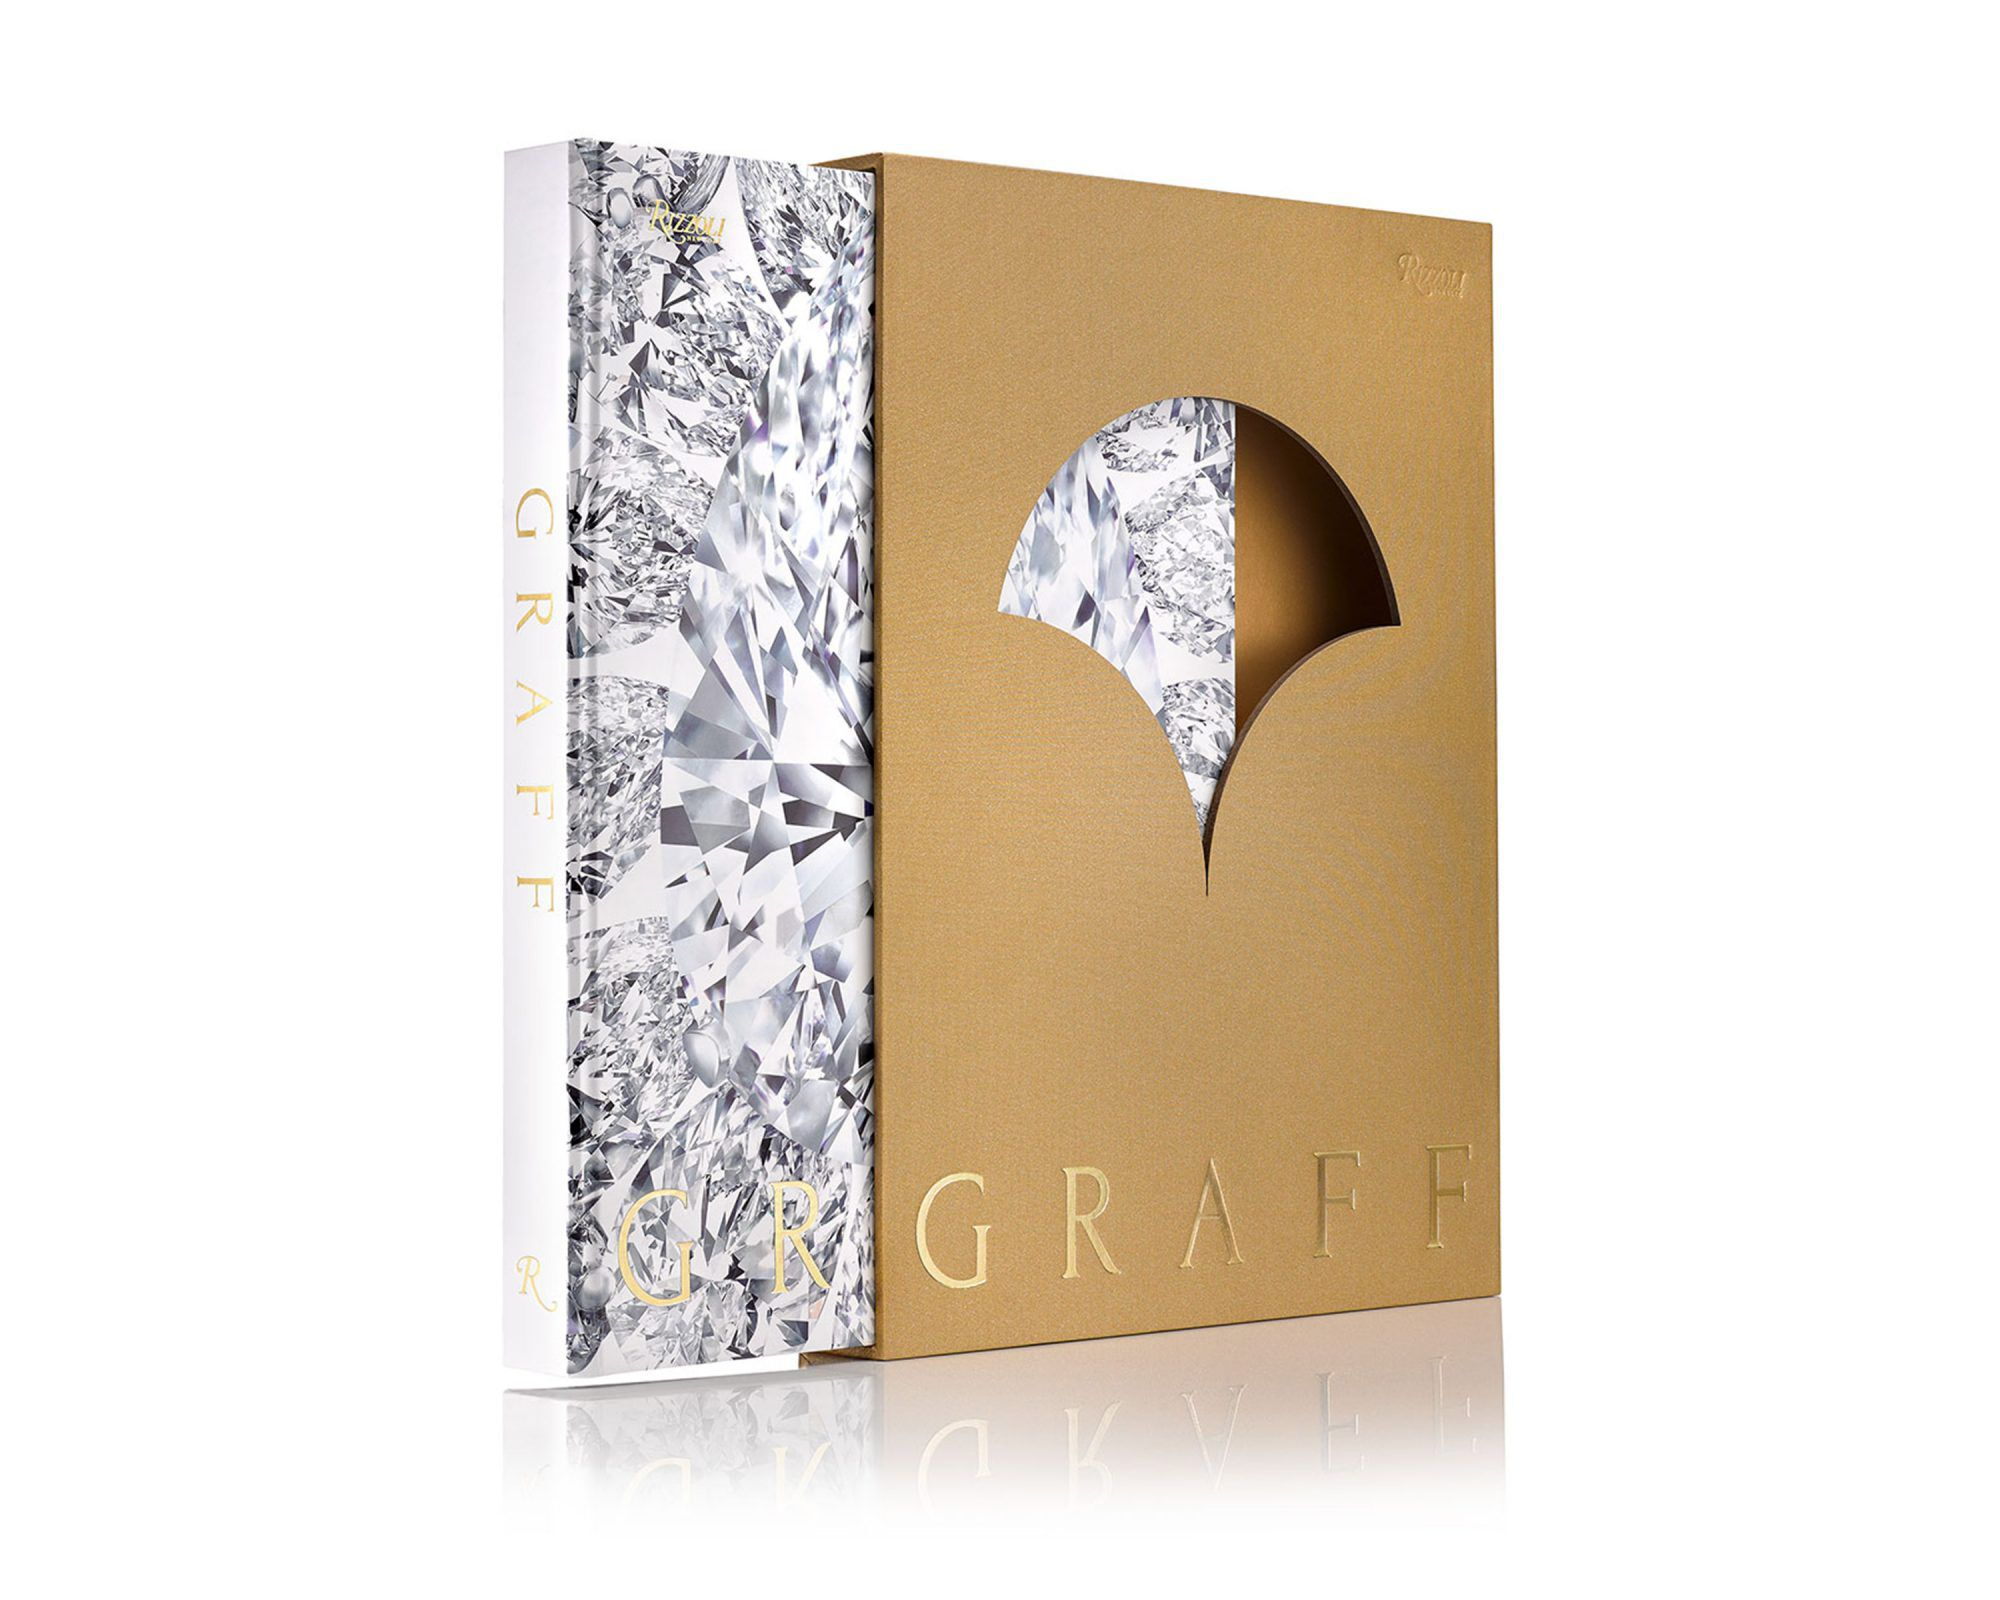 the Graff coffee table book